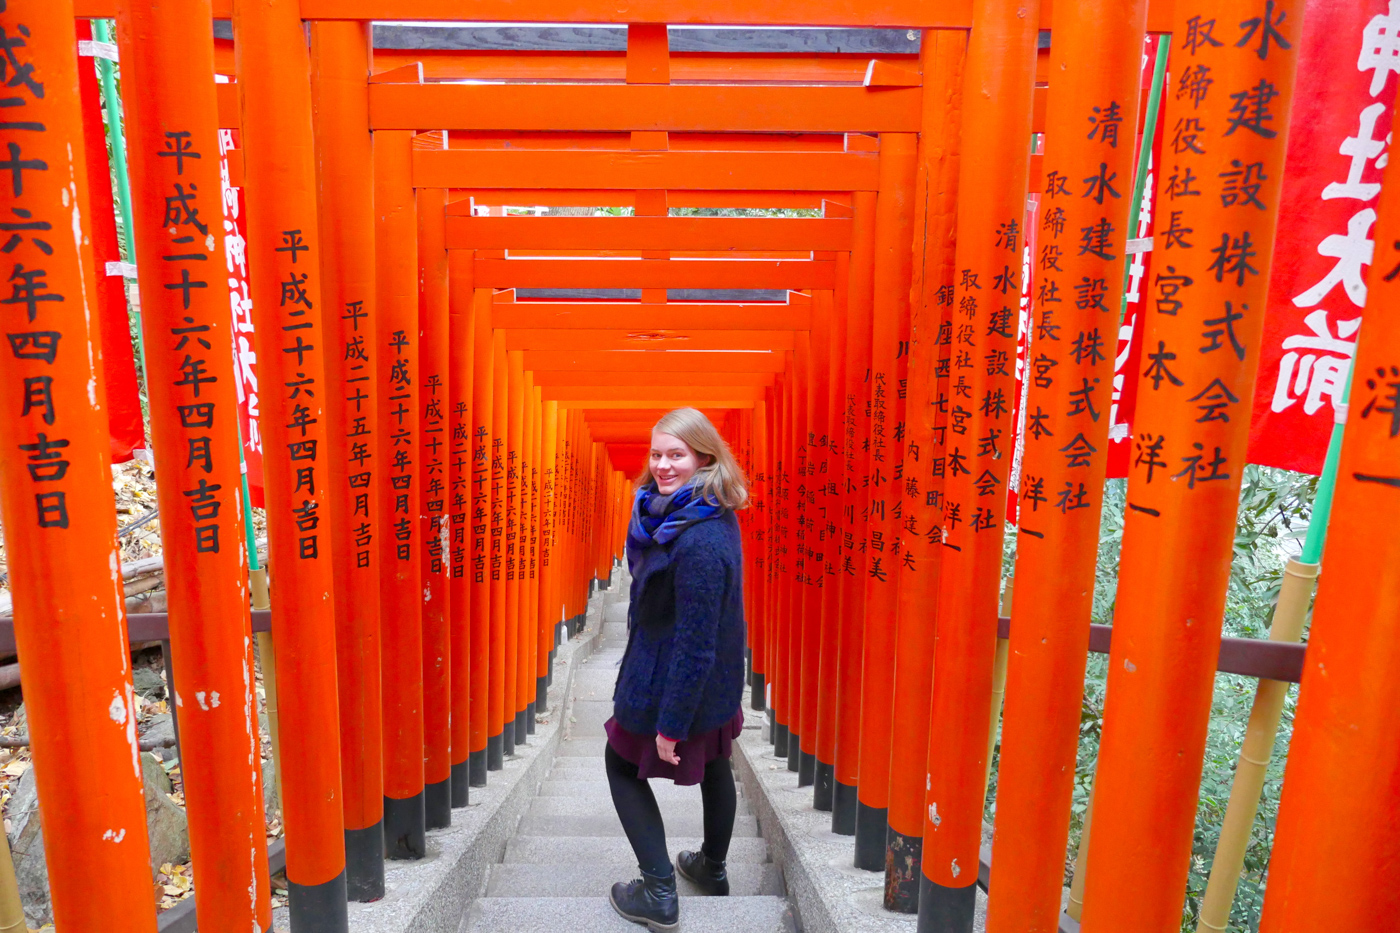 Me, walking through the Senbon Torii